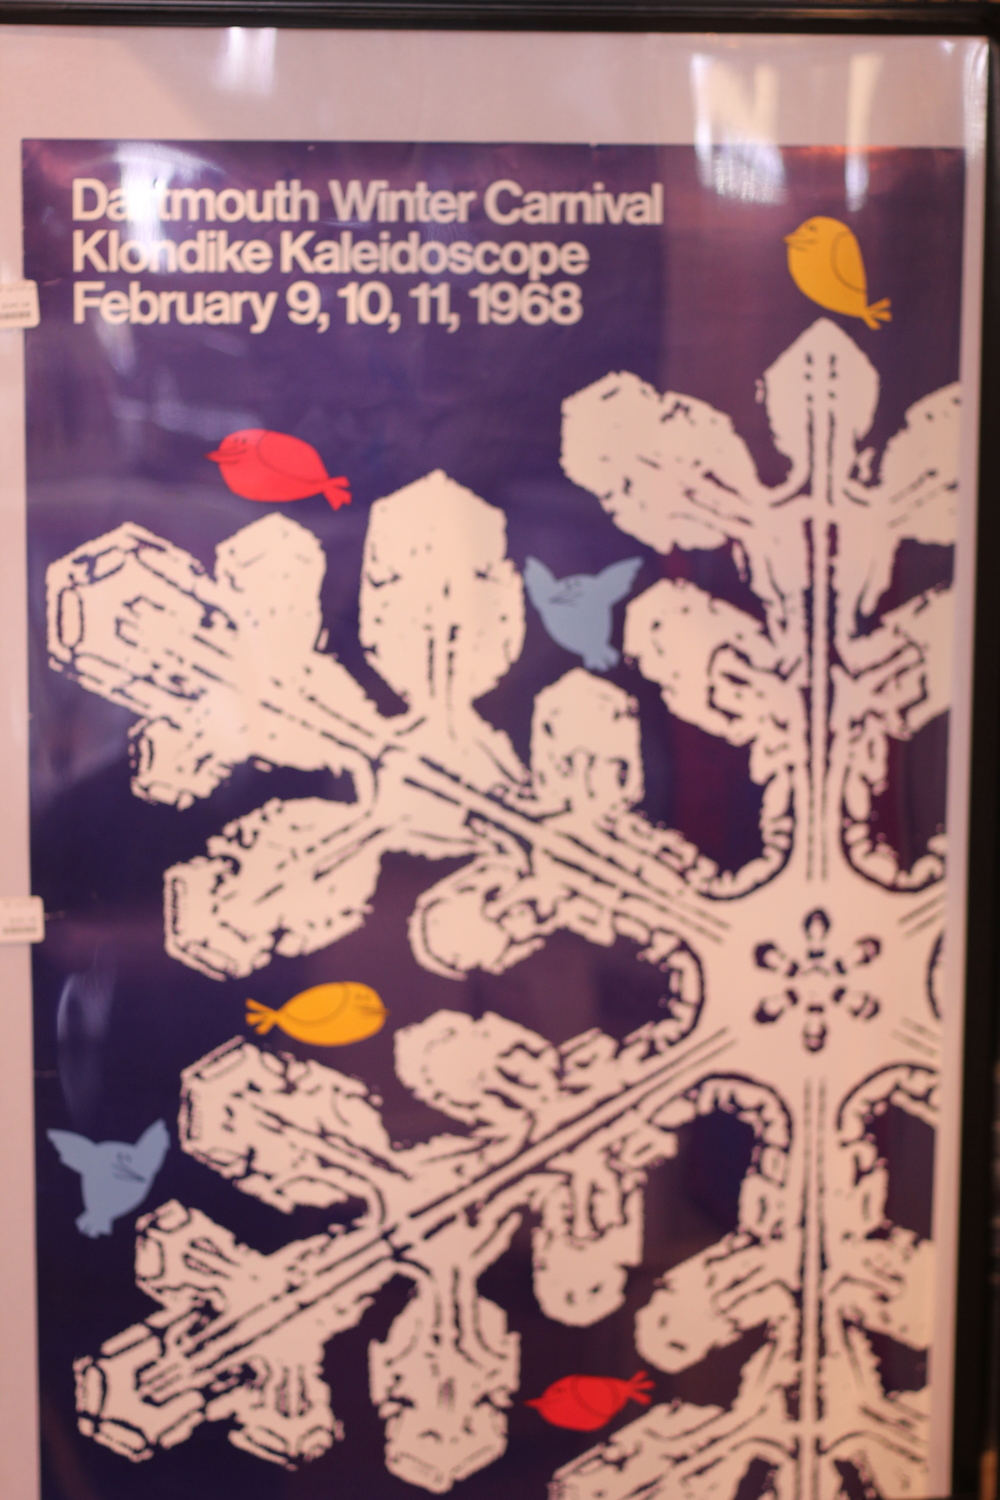 Dartmouth Winter Carnival 1968 (blue)